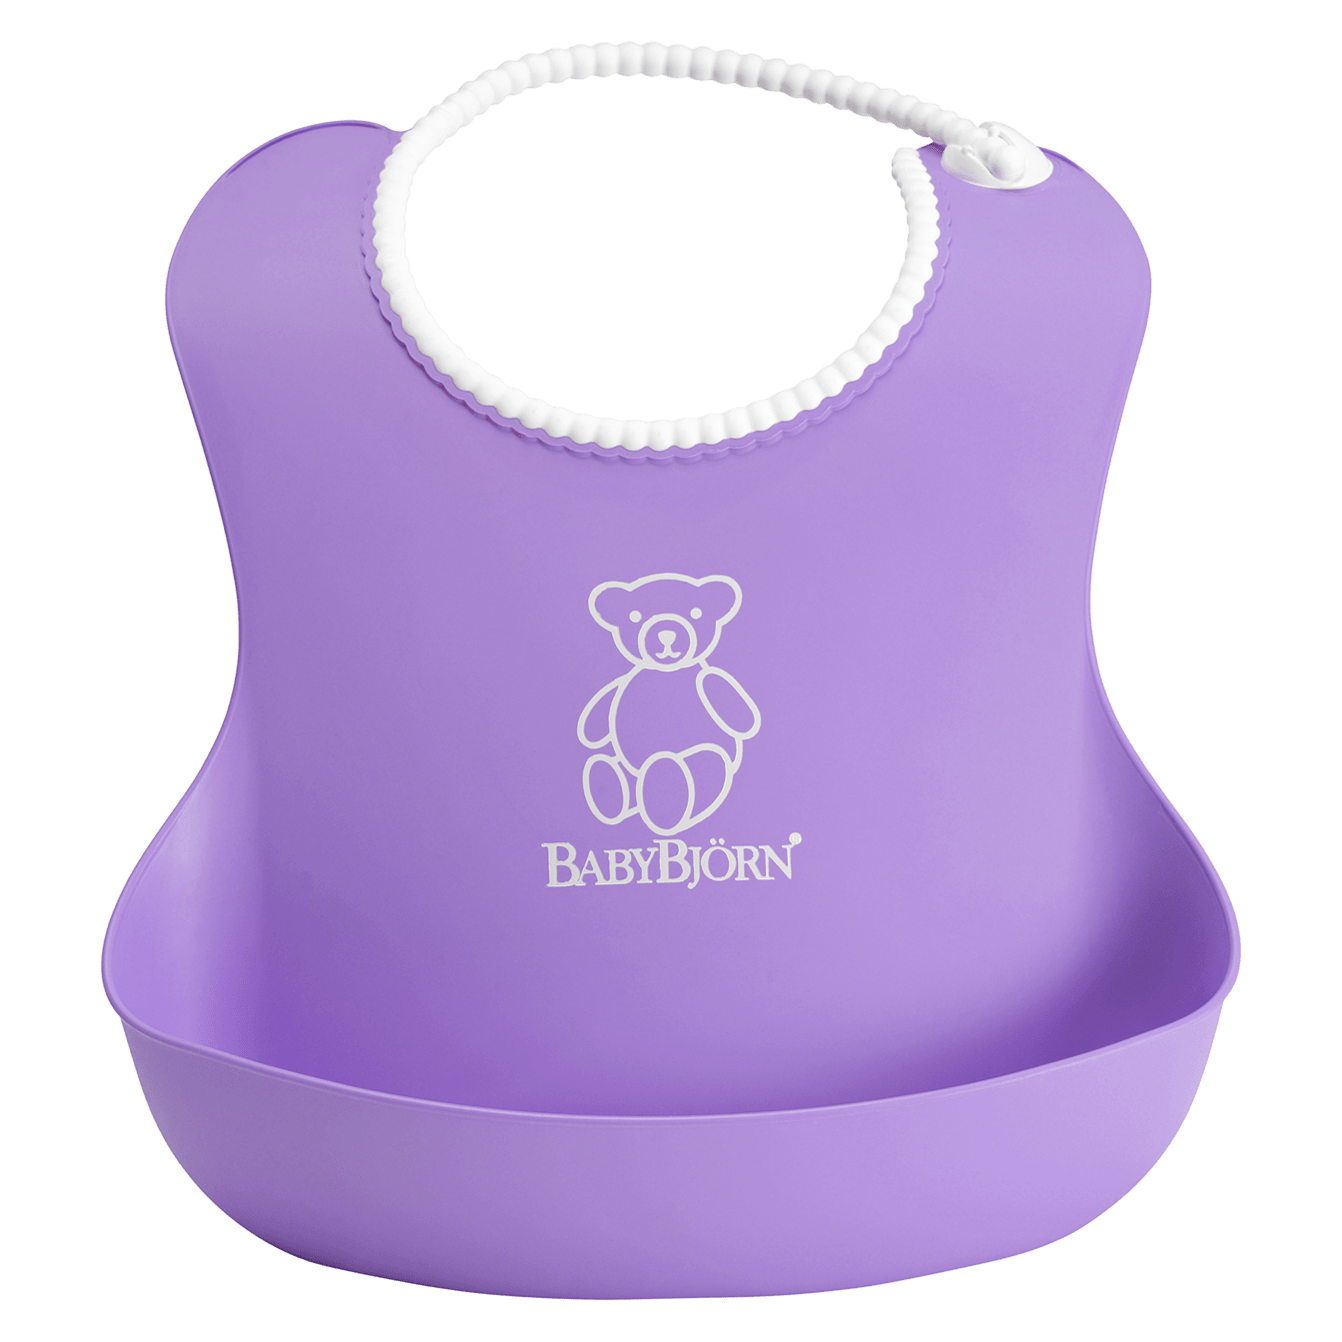 BABYBJÖRN Soft Bib in purple, an easy to clean bib with adjustable neckband, made from BPA-free plastic.